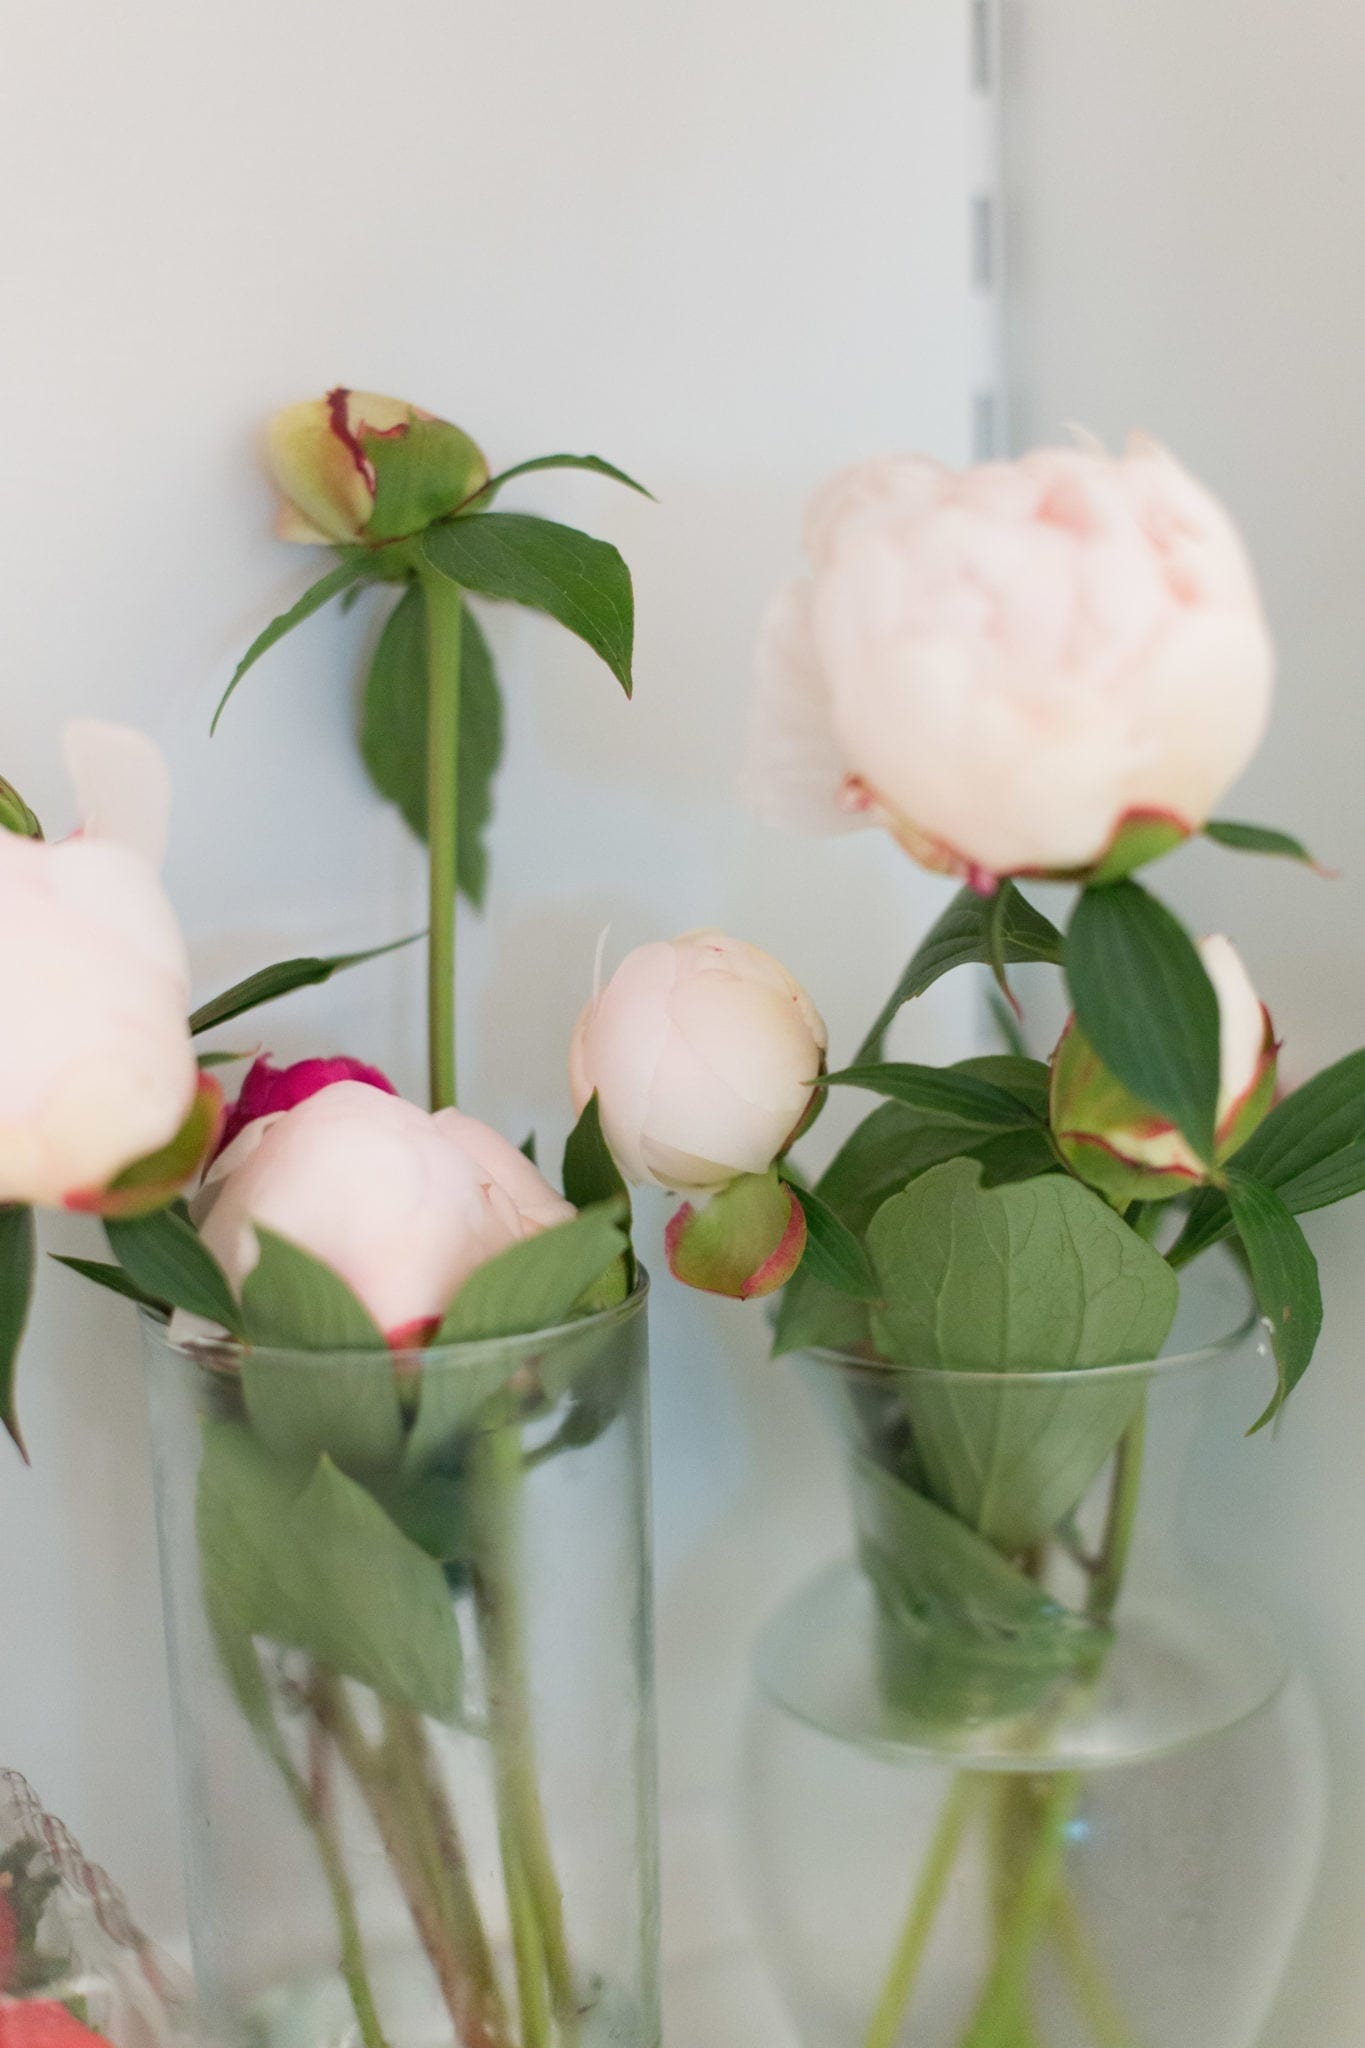 Storing peonies to bloom at a later date. Everything you need to know about how to keep peonies for months in your refrigerator.